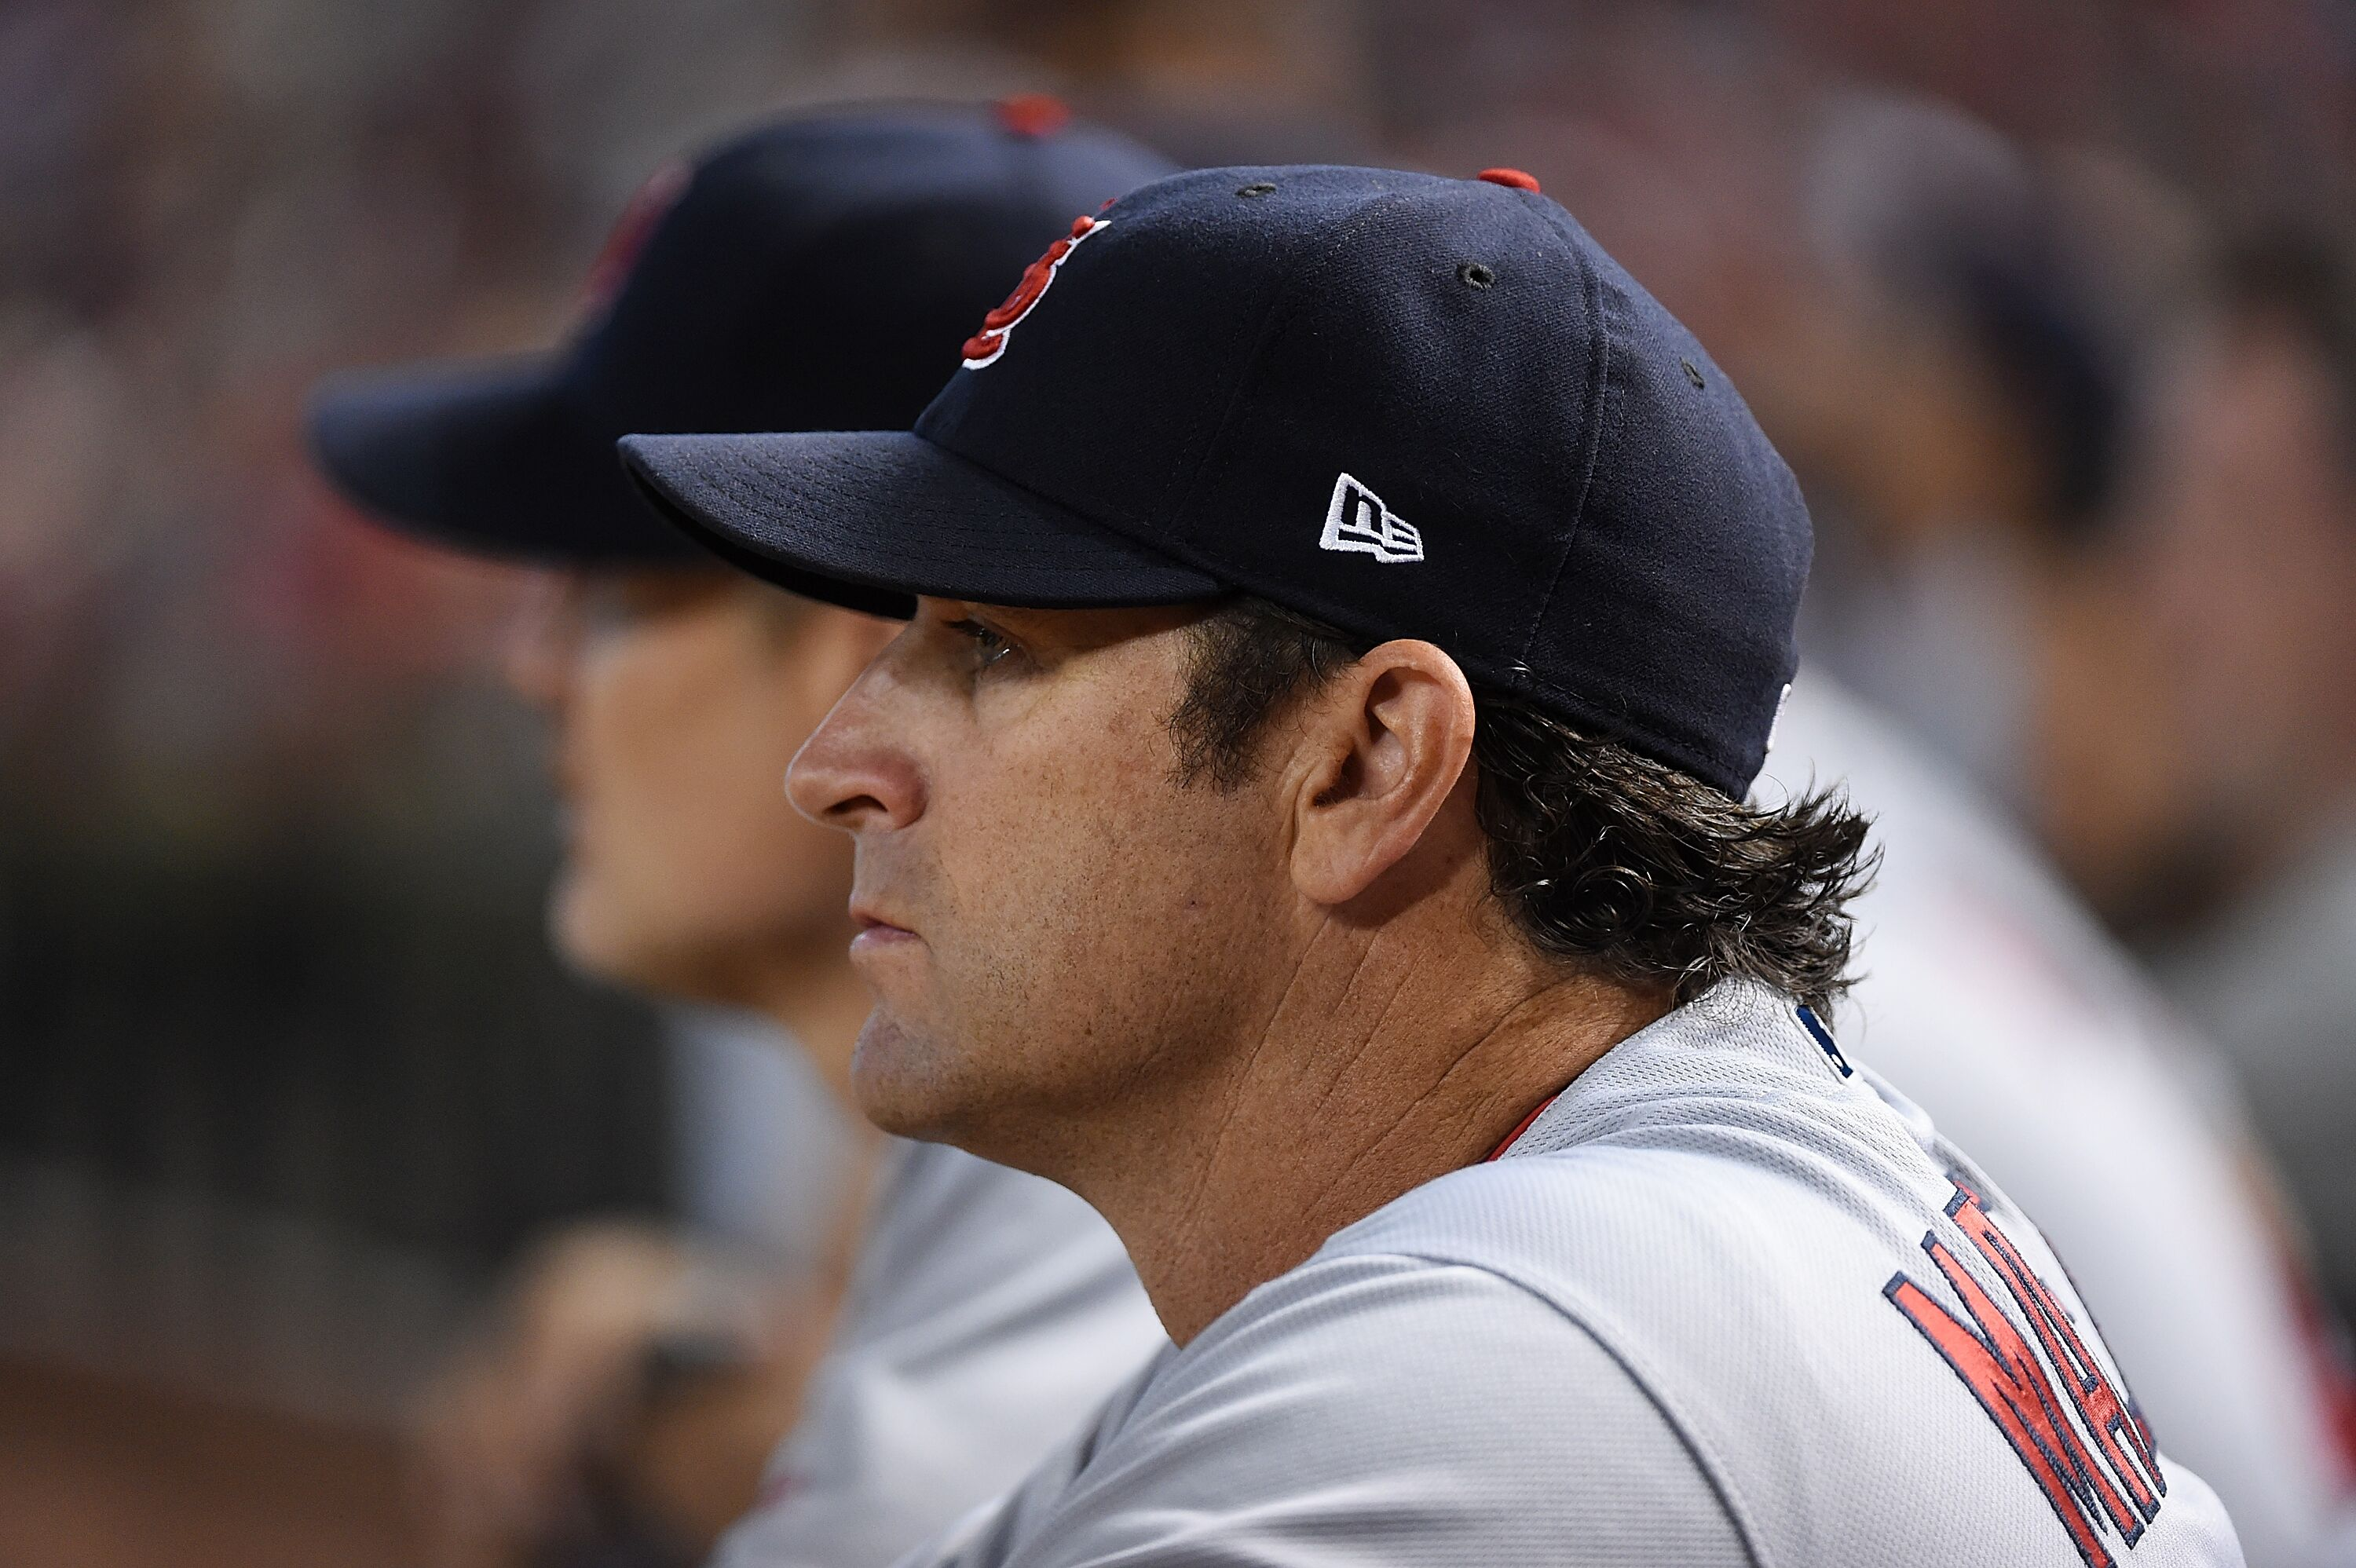 St. Louis Cardinals: Bell named manager and no sight of Matheny